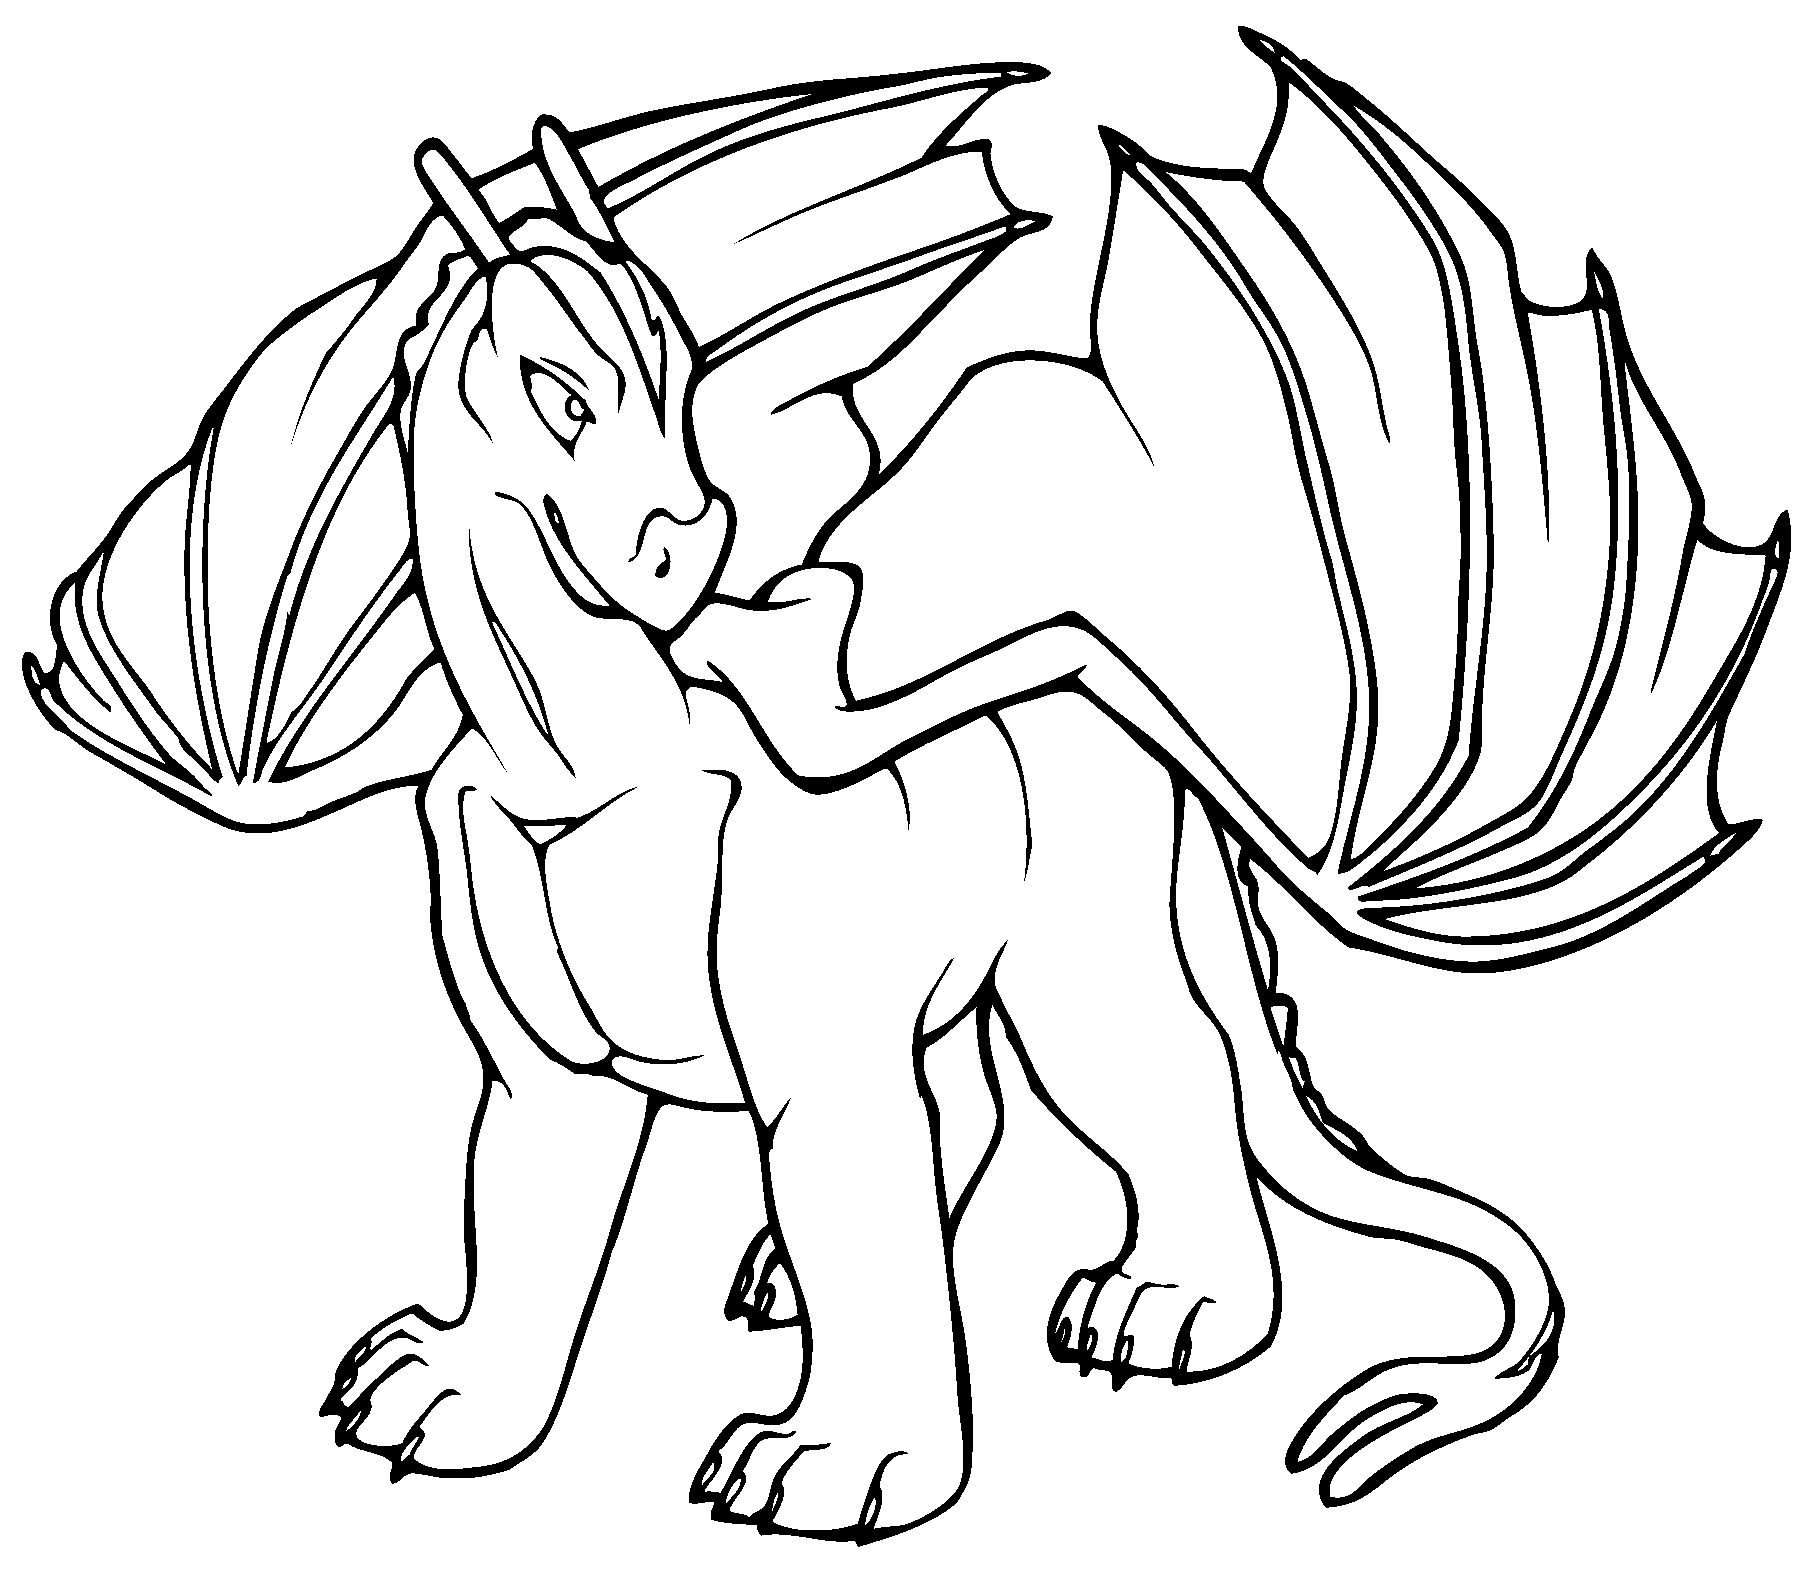 Free Printable Dragon Coloring Pages For Kids | Lettas